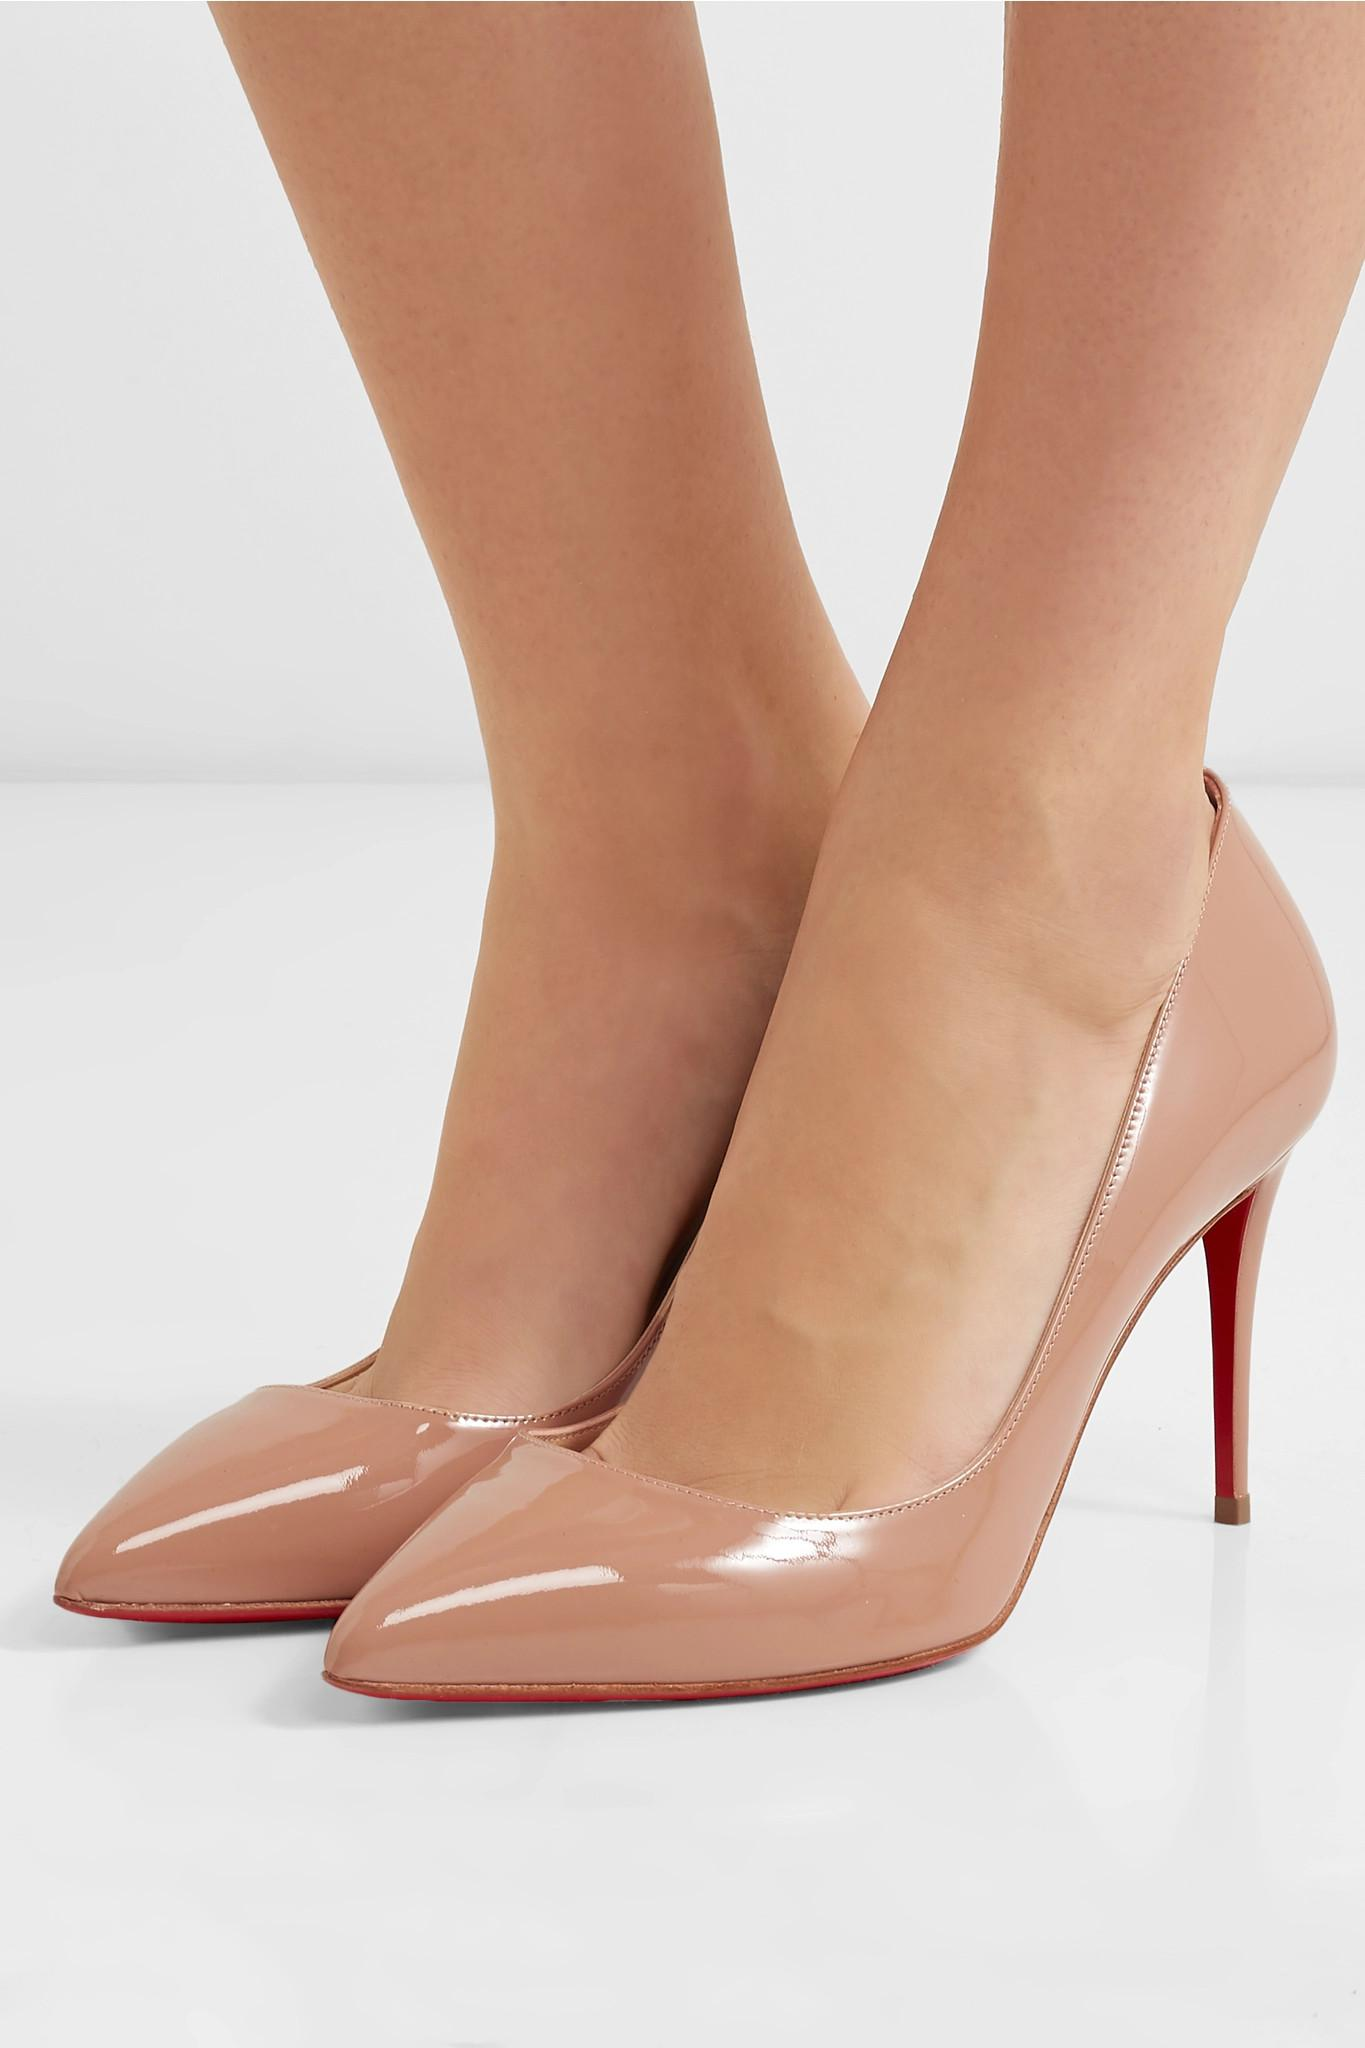 25c093dc5e93 Lyst - Christian Louboutin Pigalle 85 Patent-leather Pumps in Natural